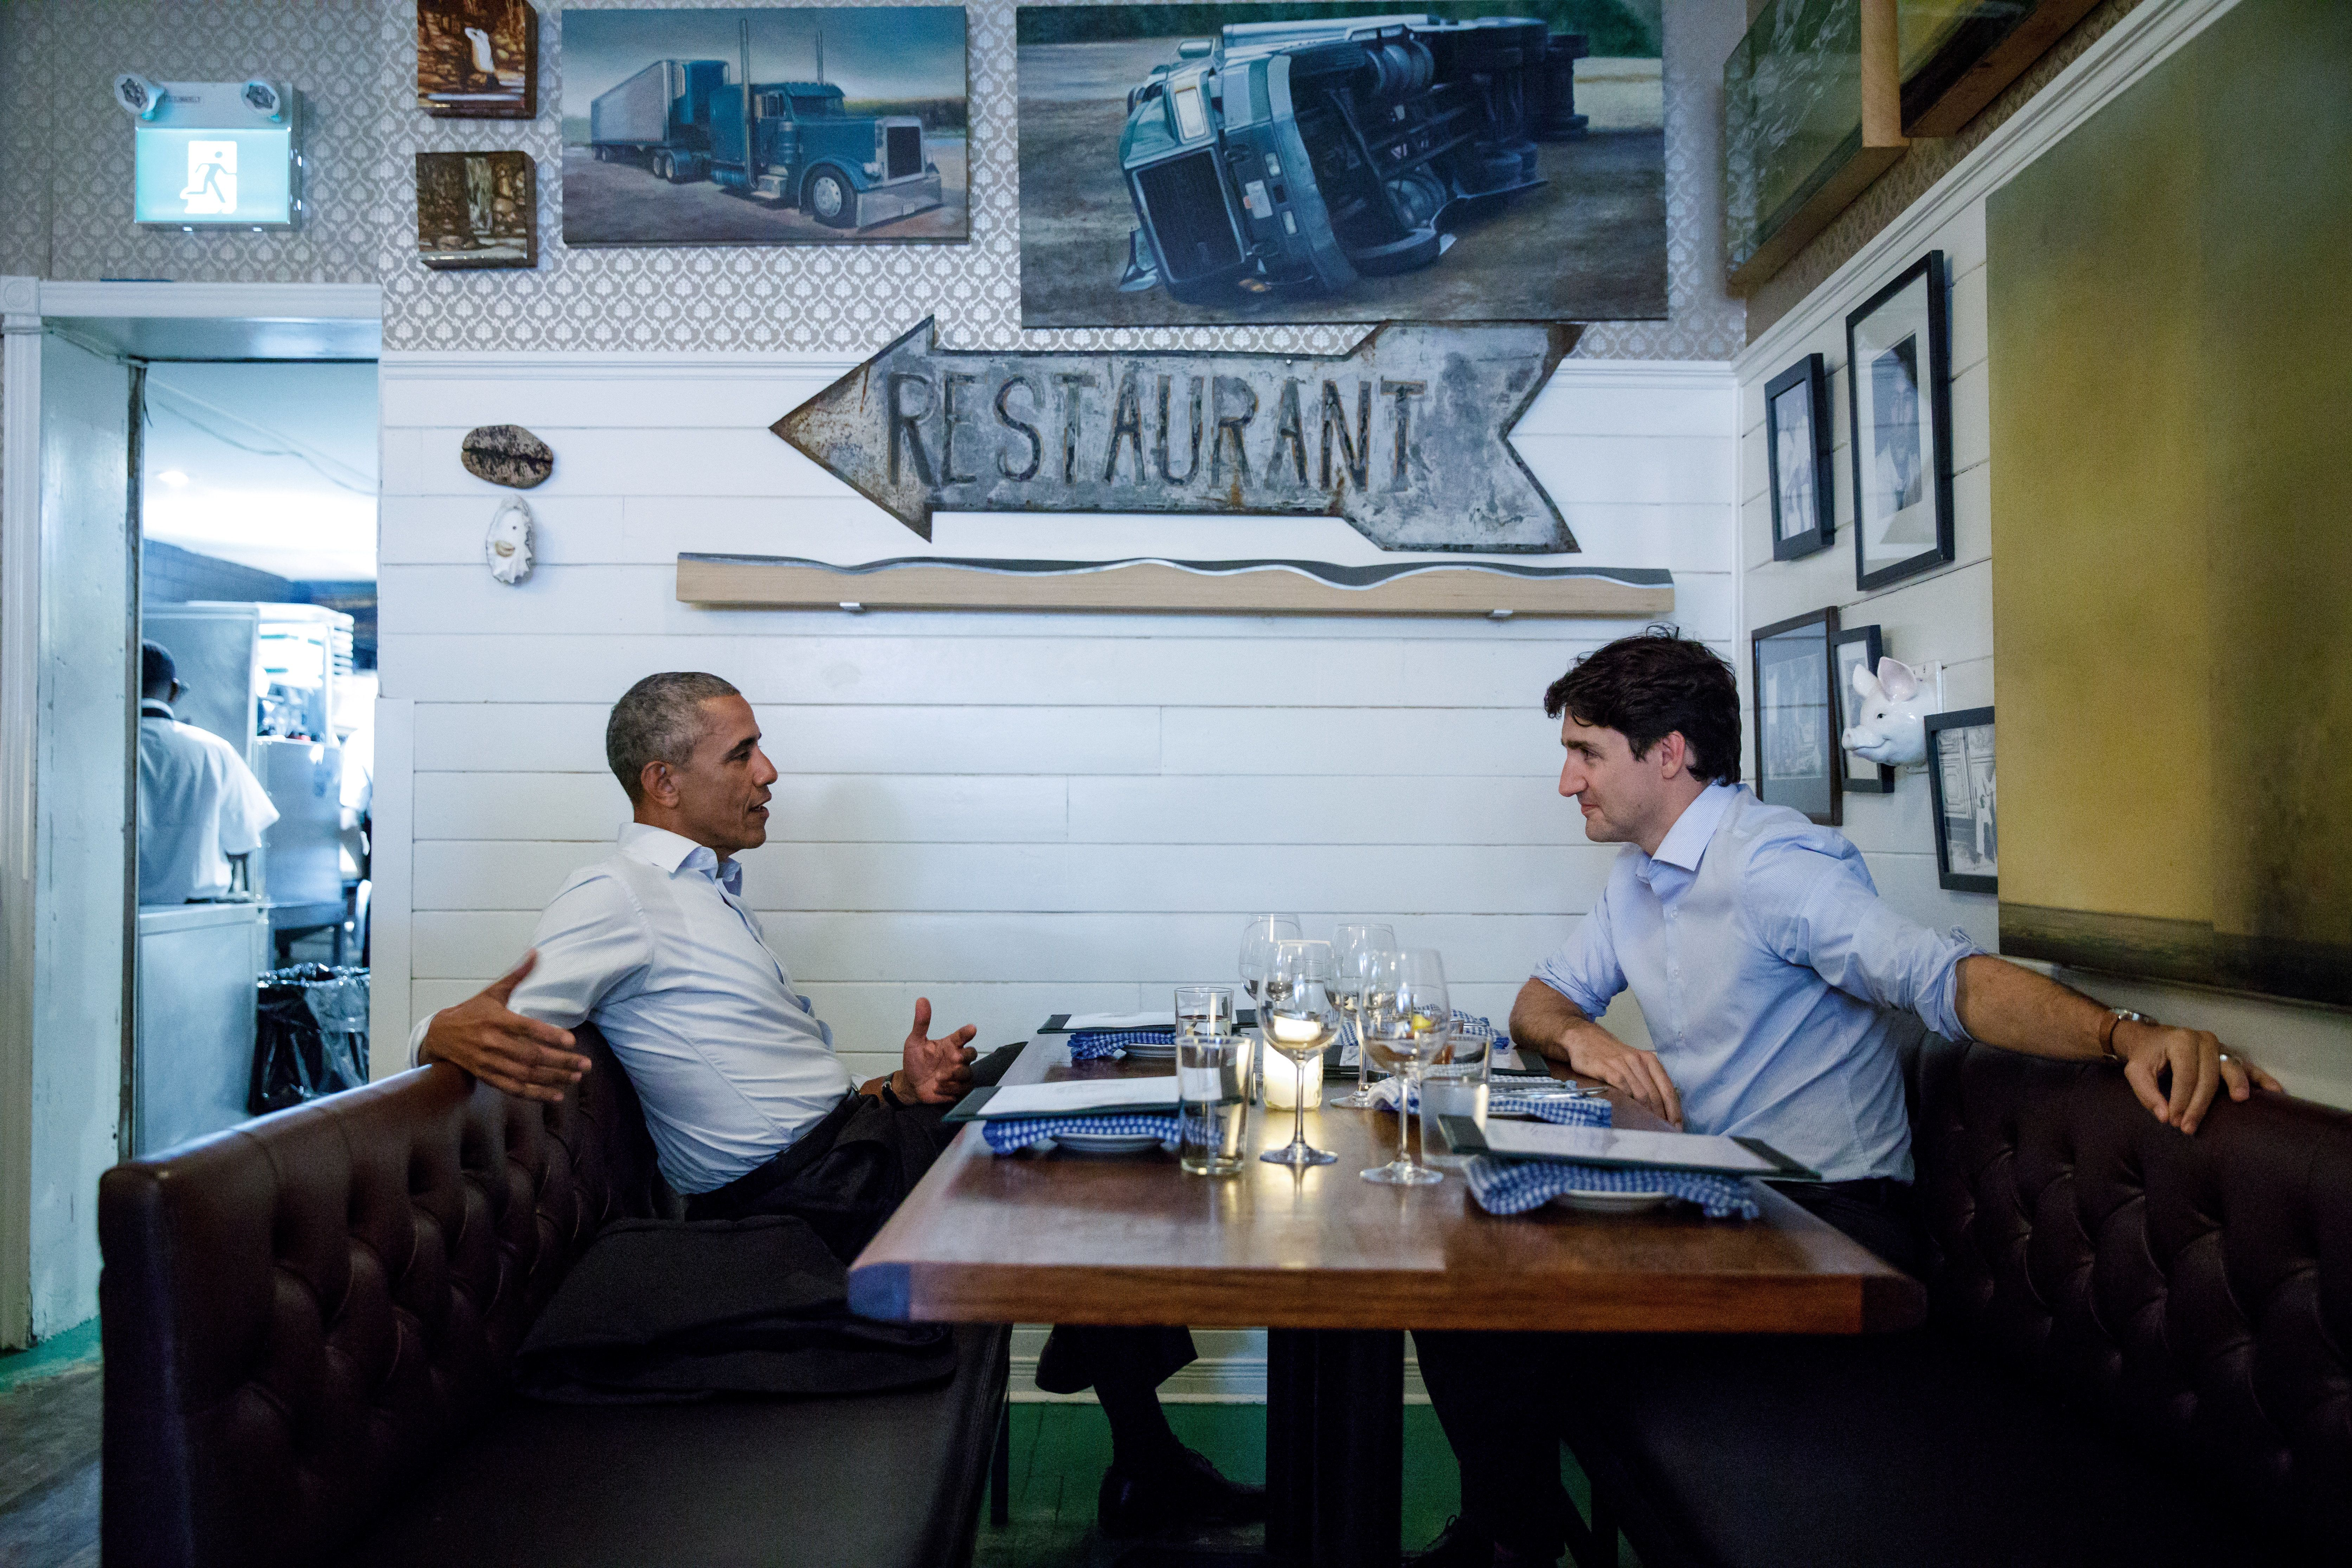 Canada's Prime Minister Justin Trudeau speaks during dinner with former United States President Barack Obama at Liverpool House restaurant during Obama's visit to address the Montreal Chamber of Commerce, in Montreal, Quebec, Canada June 6, 2017. Picture taken June 6, 2017. Adam Scotti/Prime Minister's Office/Handout via REUTERS   ATTENTION EDITORS - THIS IMAGE WAS PROVIDED BY A THIRD PARTY. EDITORIAL USE ONLY.